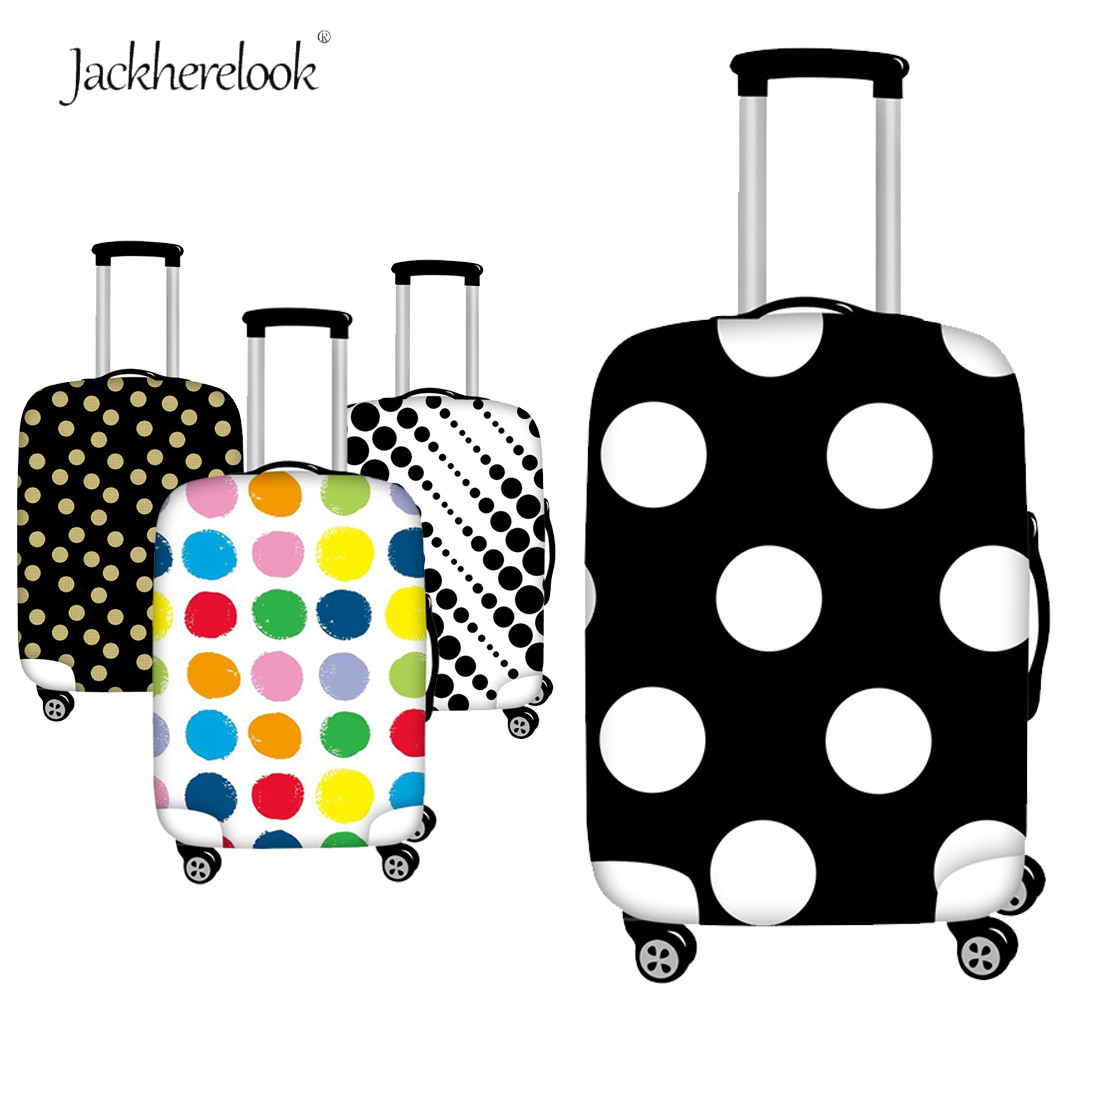 Jackherelook Black White Dot Travel Suitcase Cover Colorful Dot Printed Luggage Cover Bag Thicken Trolley Cover Rainbow Dots Bag